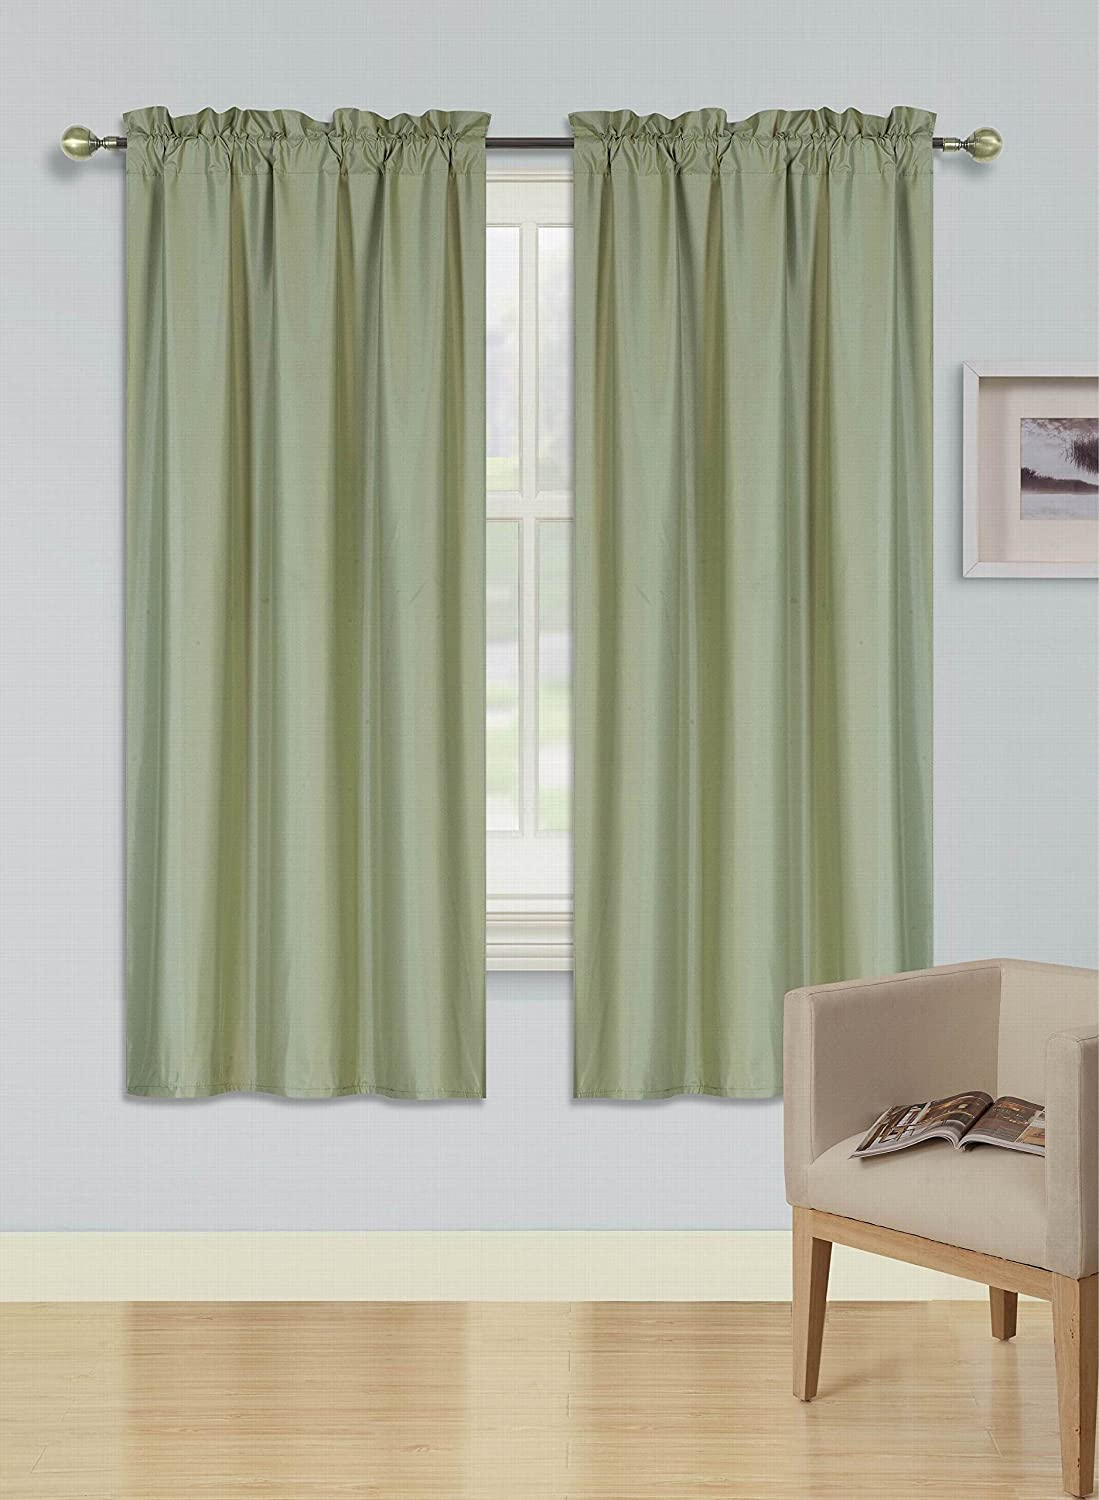 1 Set Rod Pocket Insulated Thermal Lined Blackout Window Curtain R64 IVORY